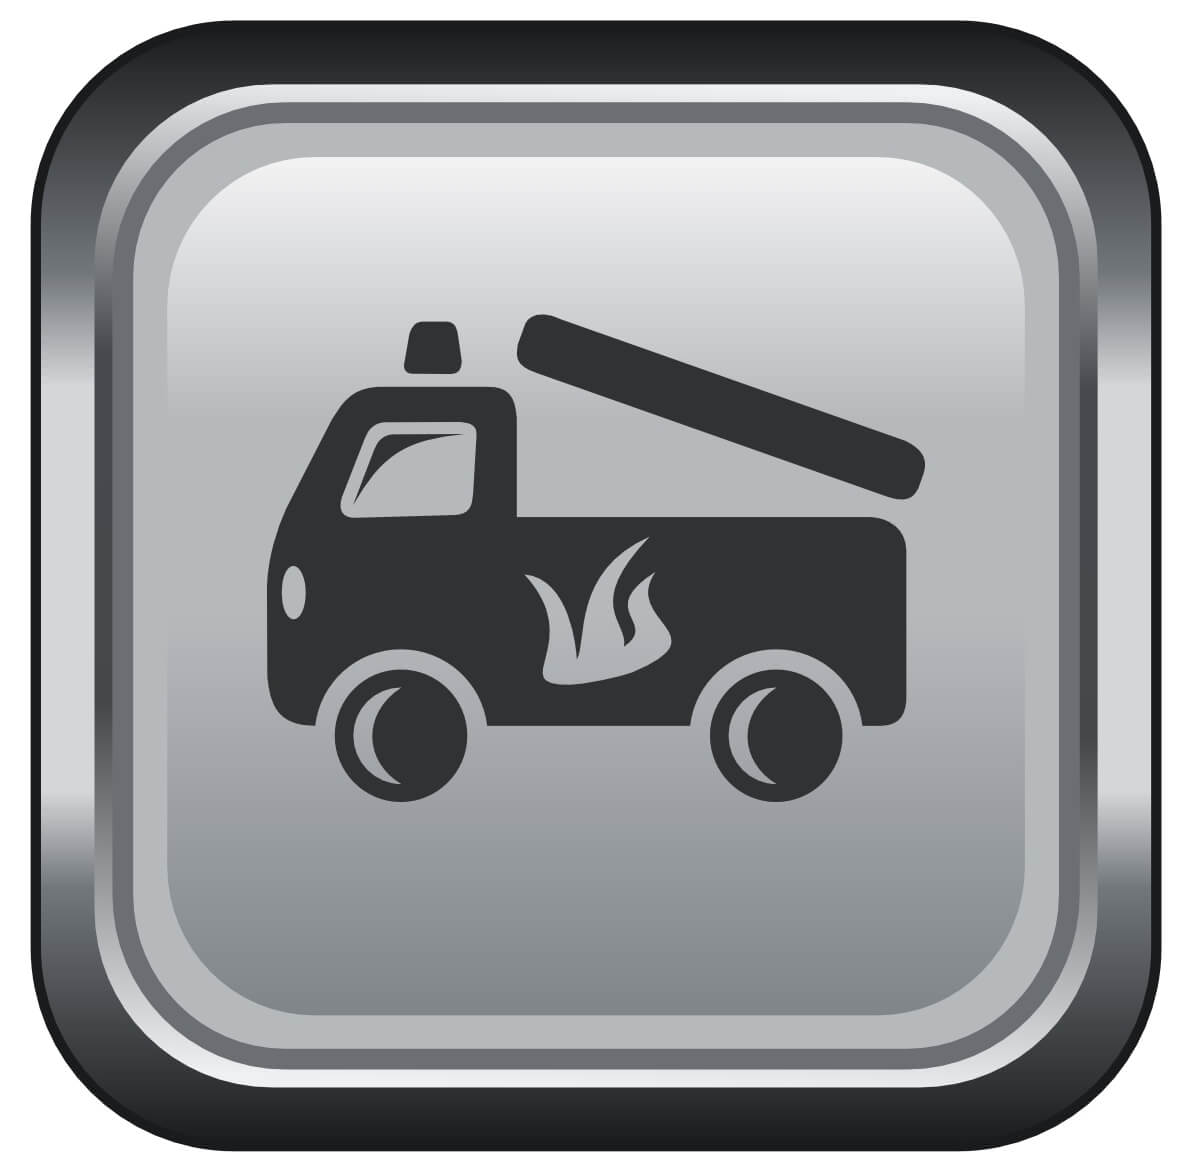 Ico Download Fire Department